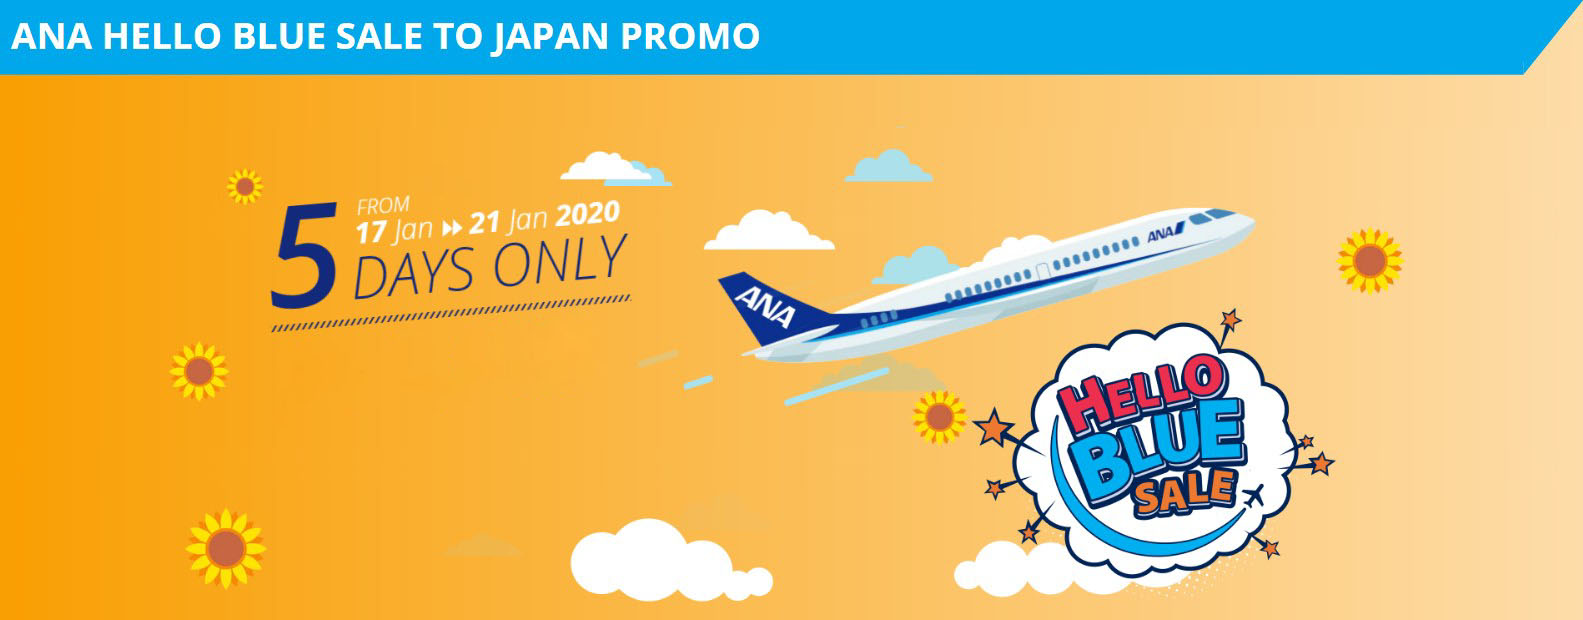 All Nippon Airways Hello Blue Sale ANA